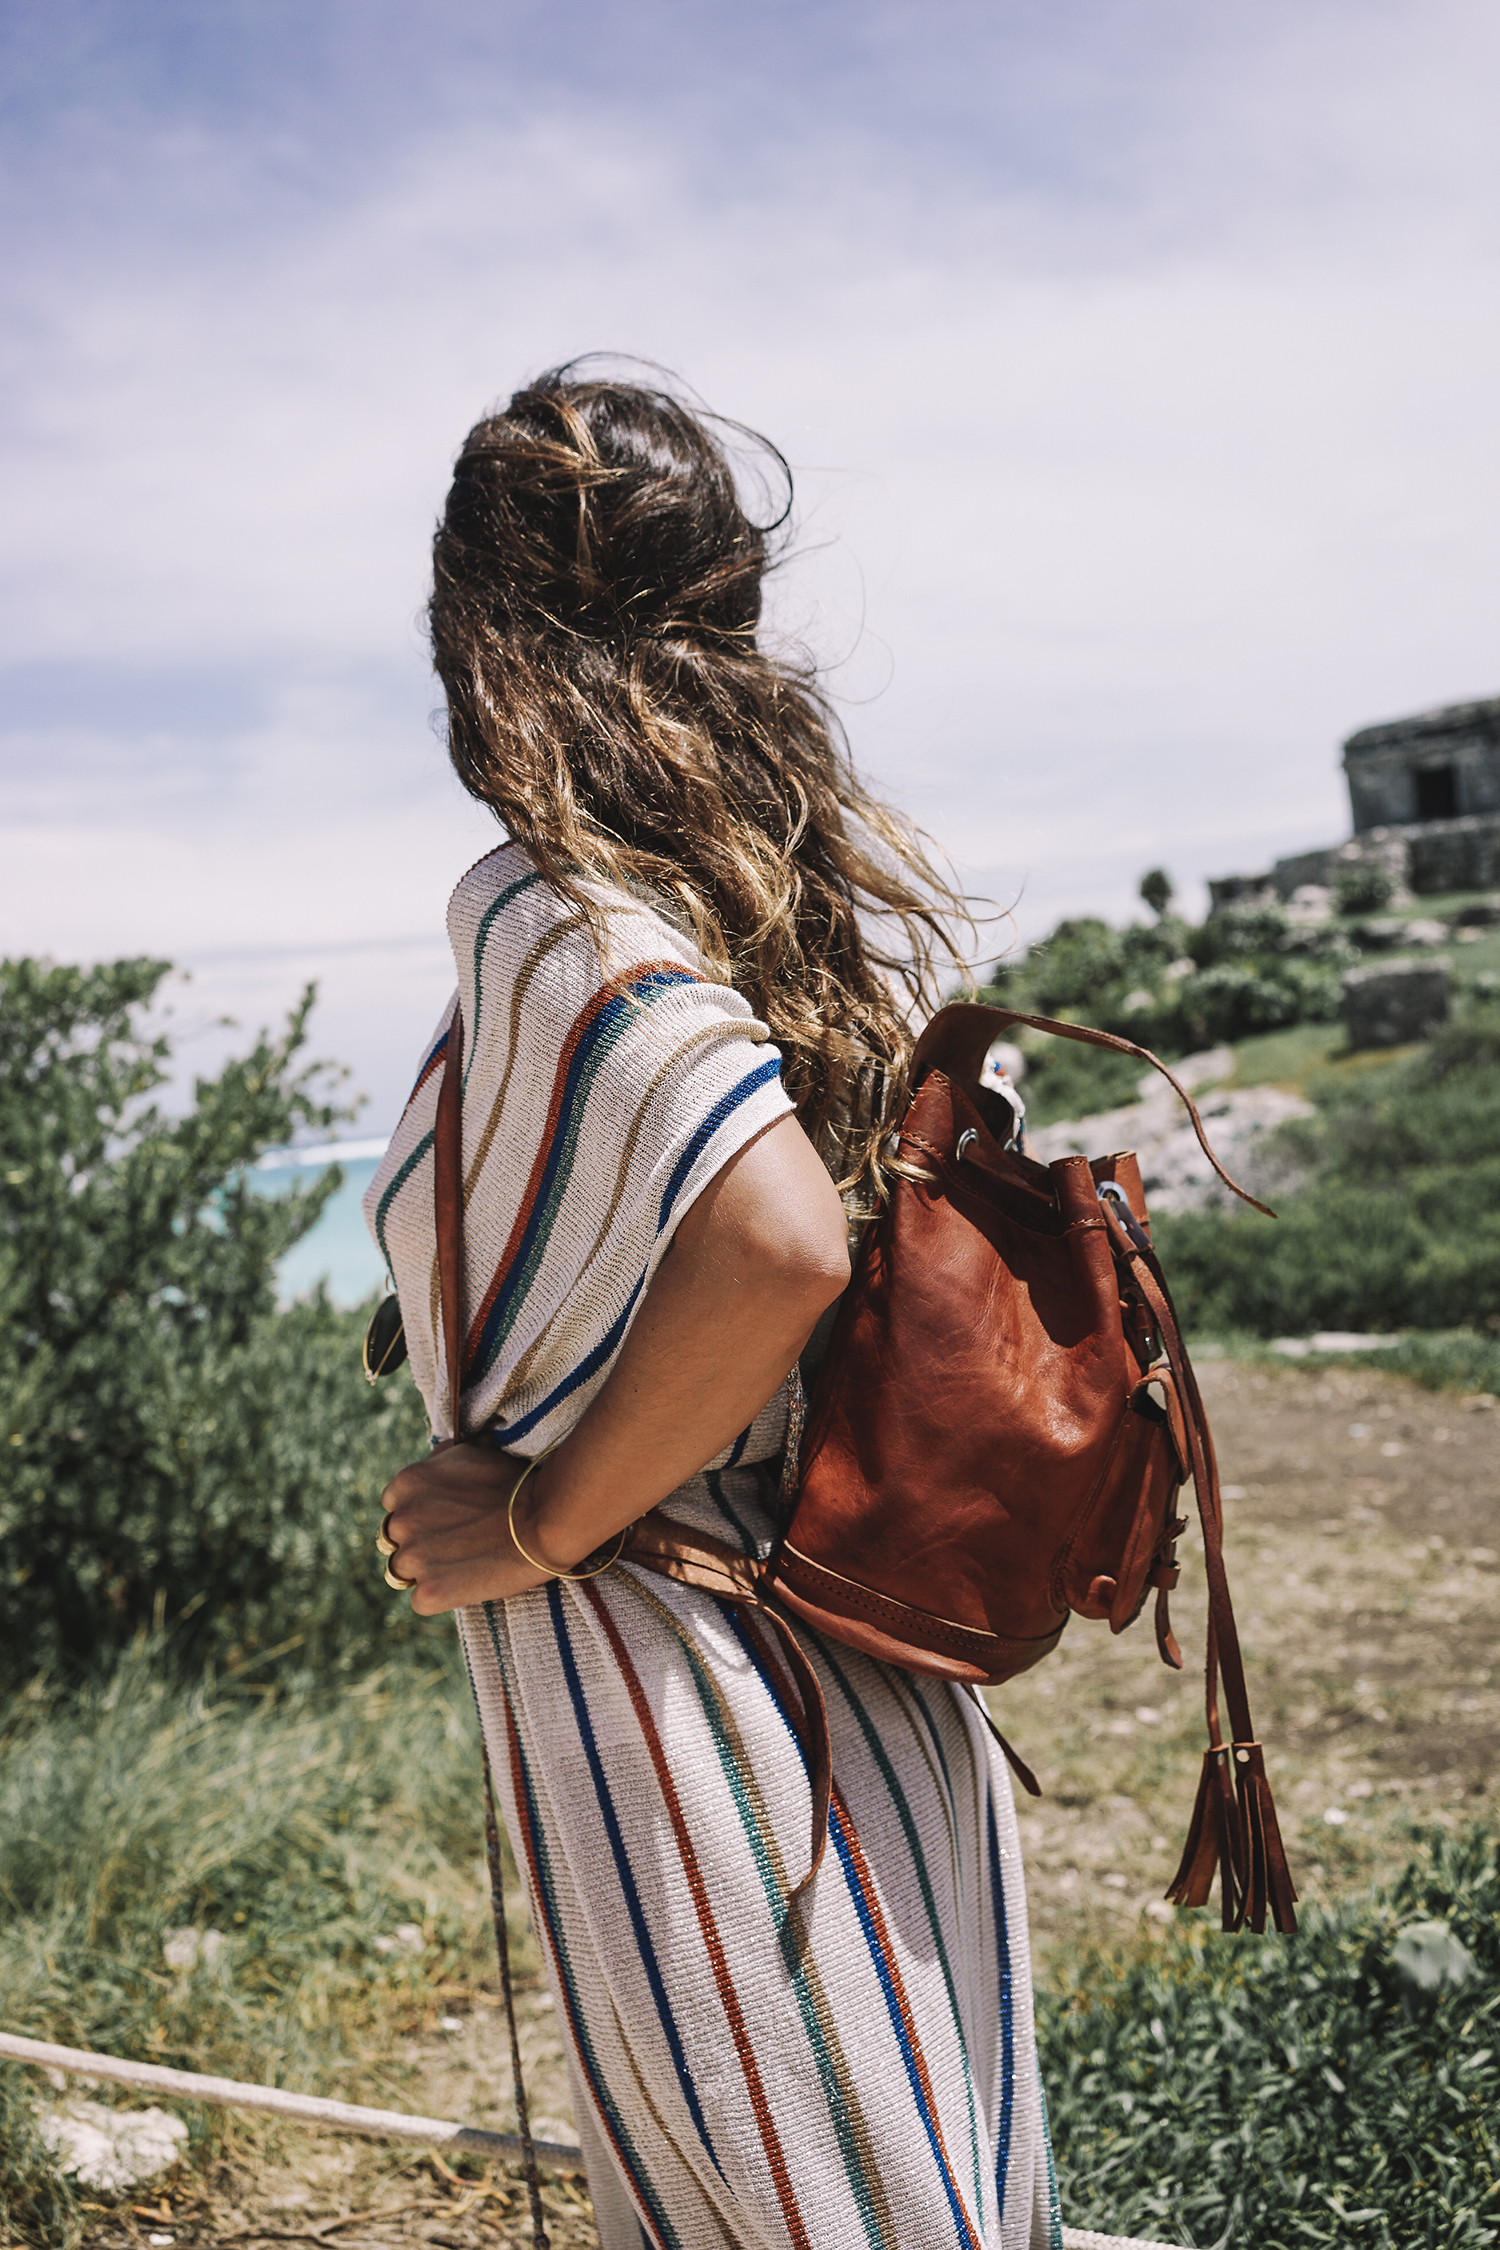 stripped_dress-leather_backpack-suede_espadrilles-mayan_ruins-hotel_esencia-sanara_tulum-beach-mexico-outfit-collage_vintage-42